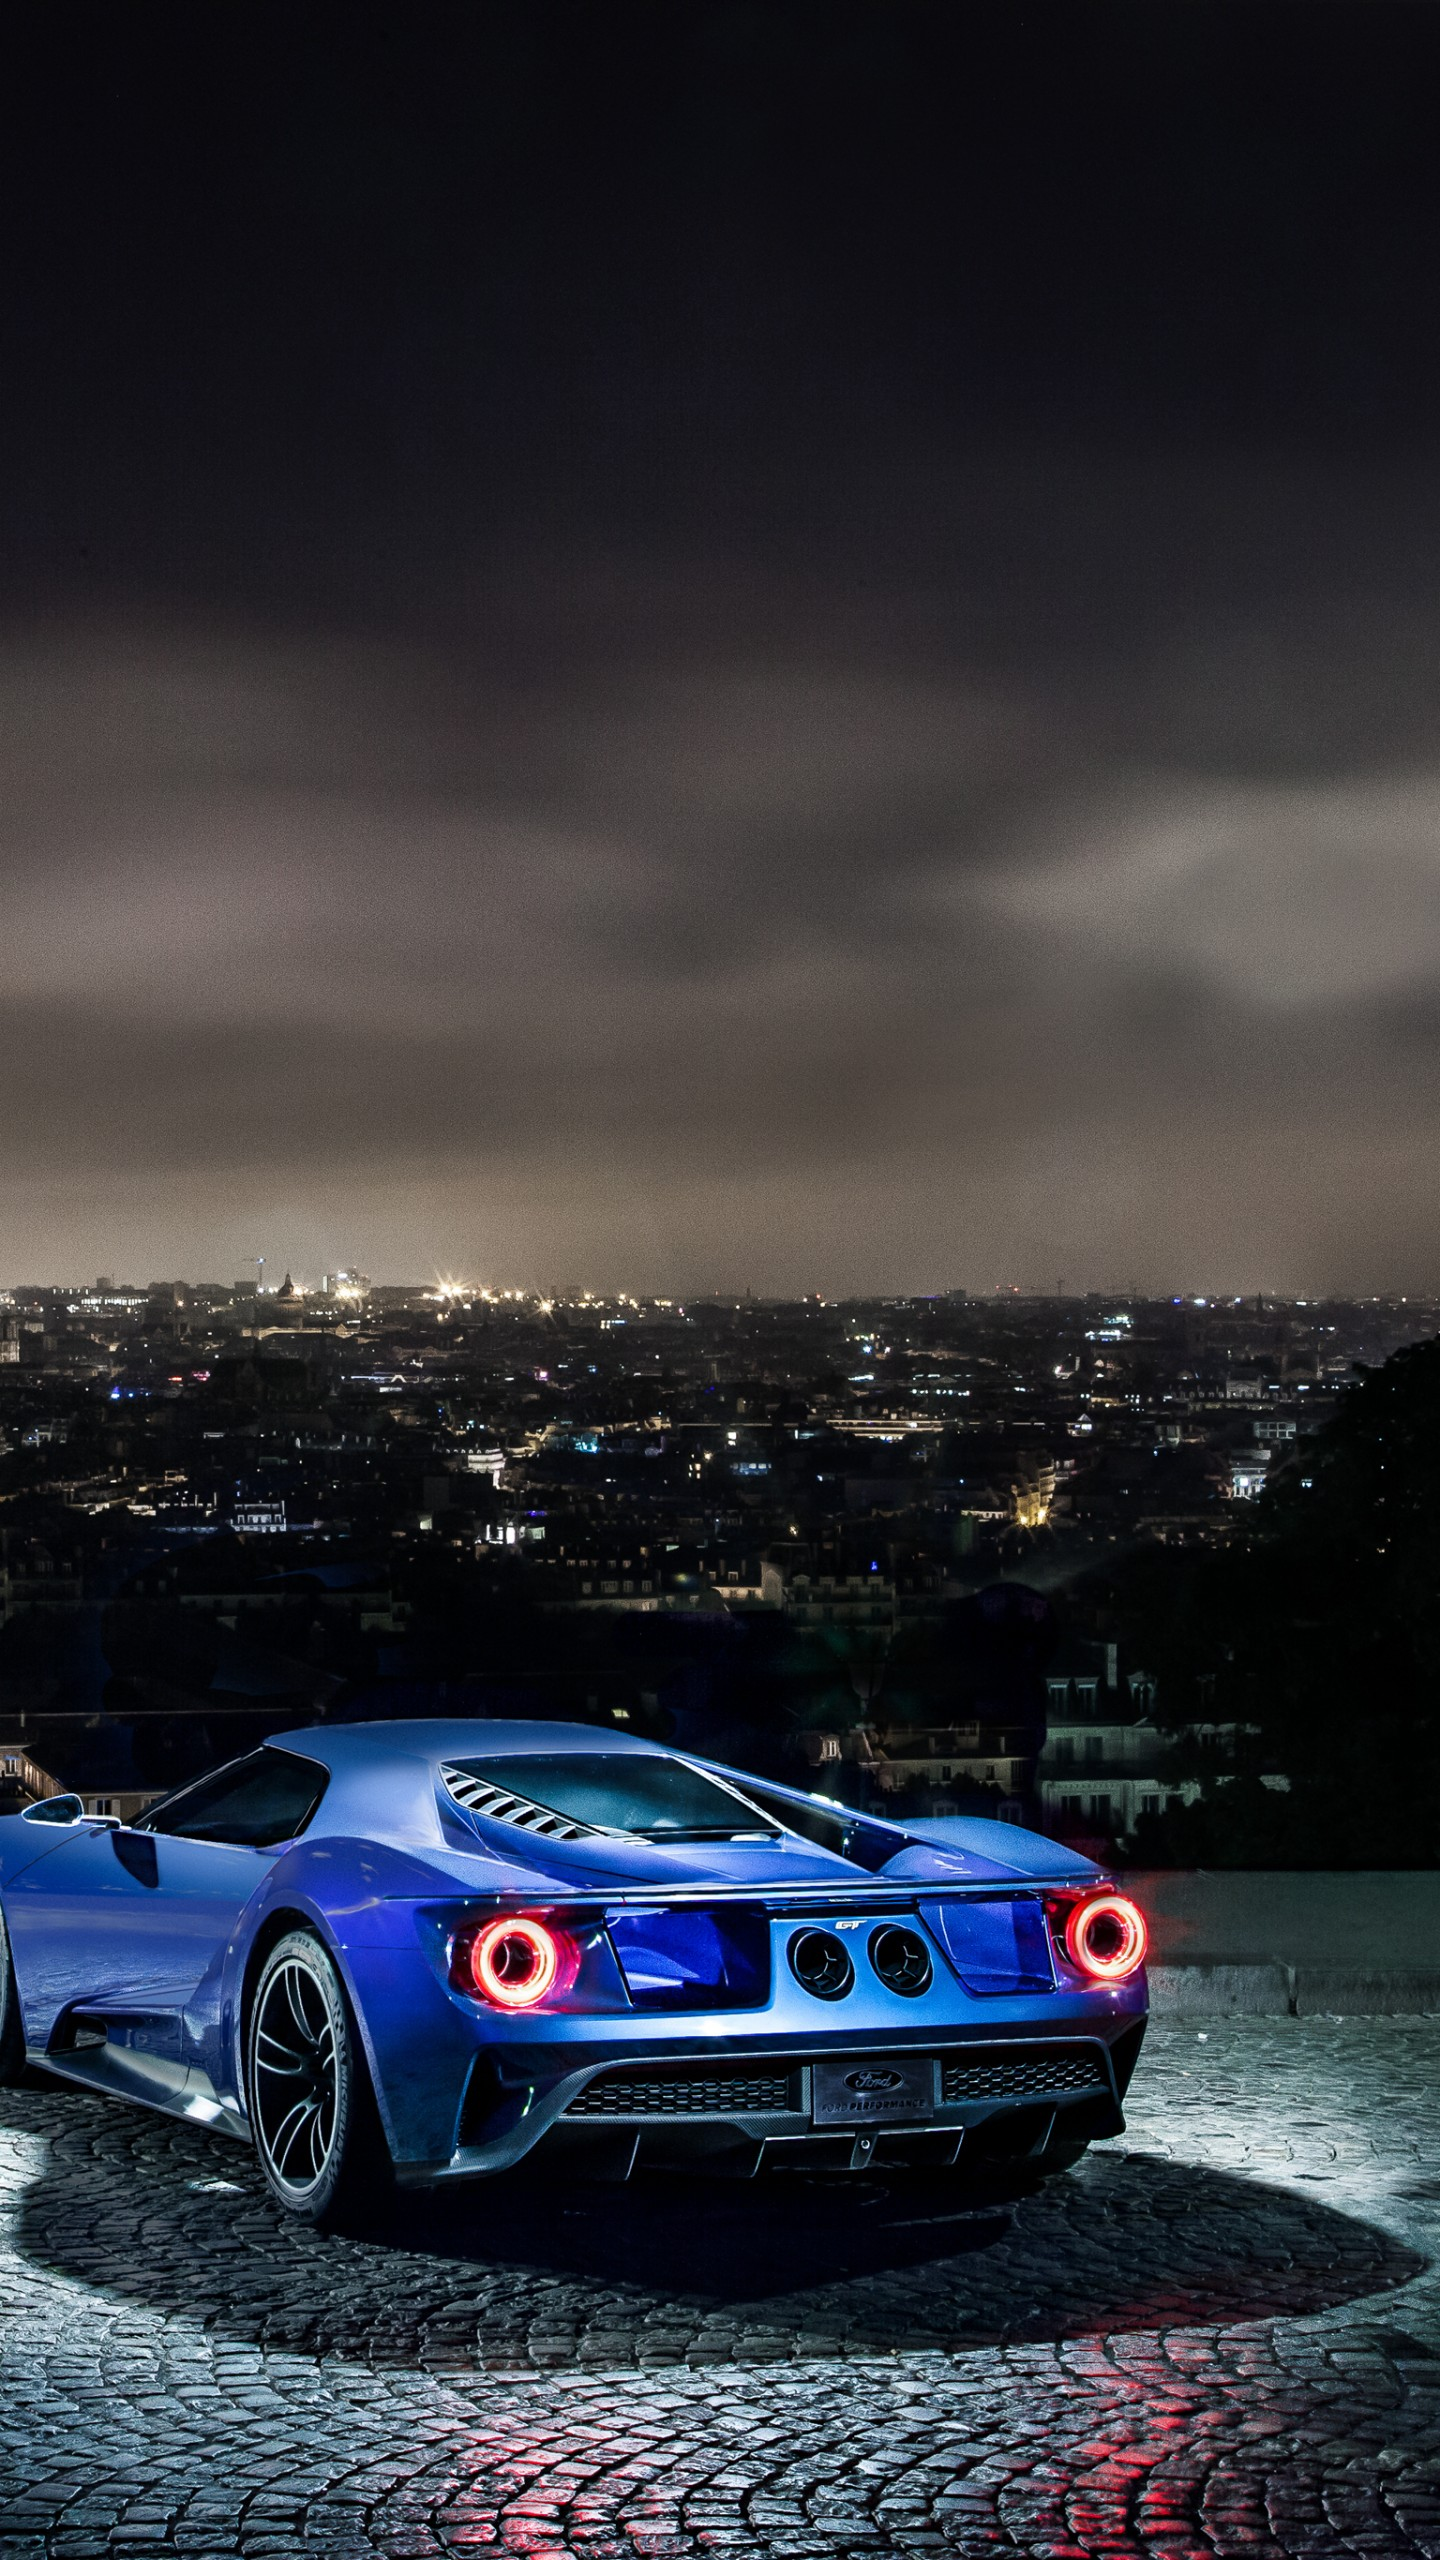 Military Quotes Iphone Wallpaper Wallpaper Ford Gt Supercar Concept Blue Sports Car